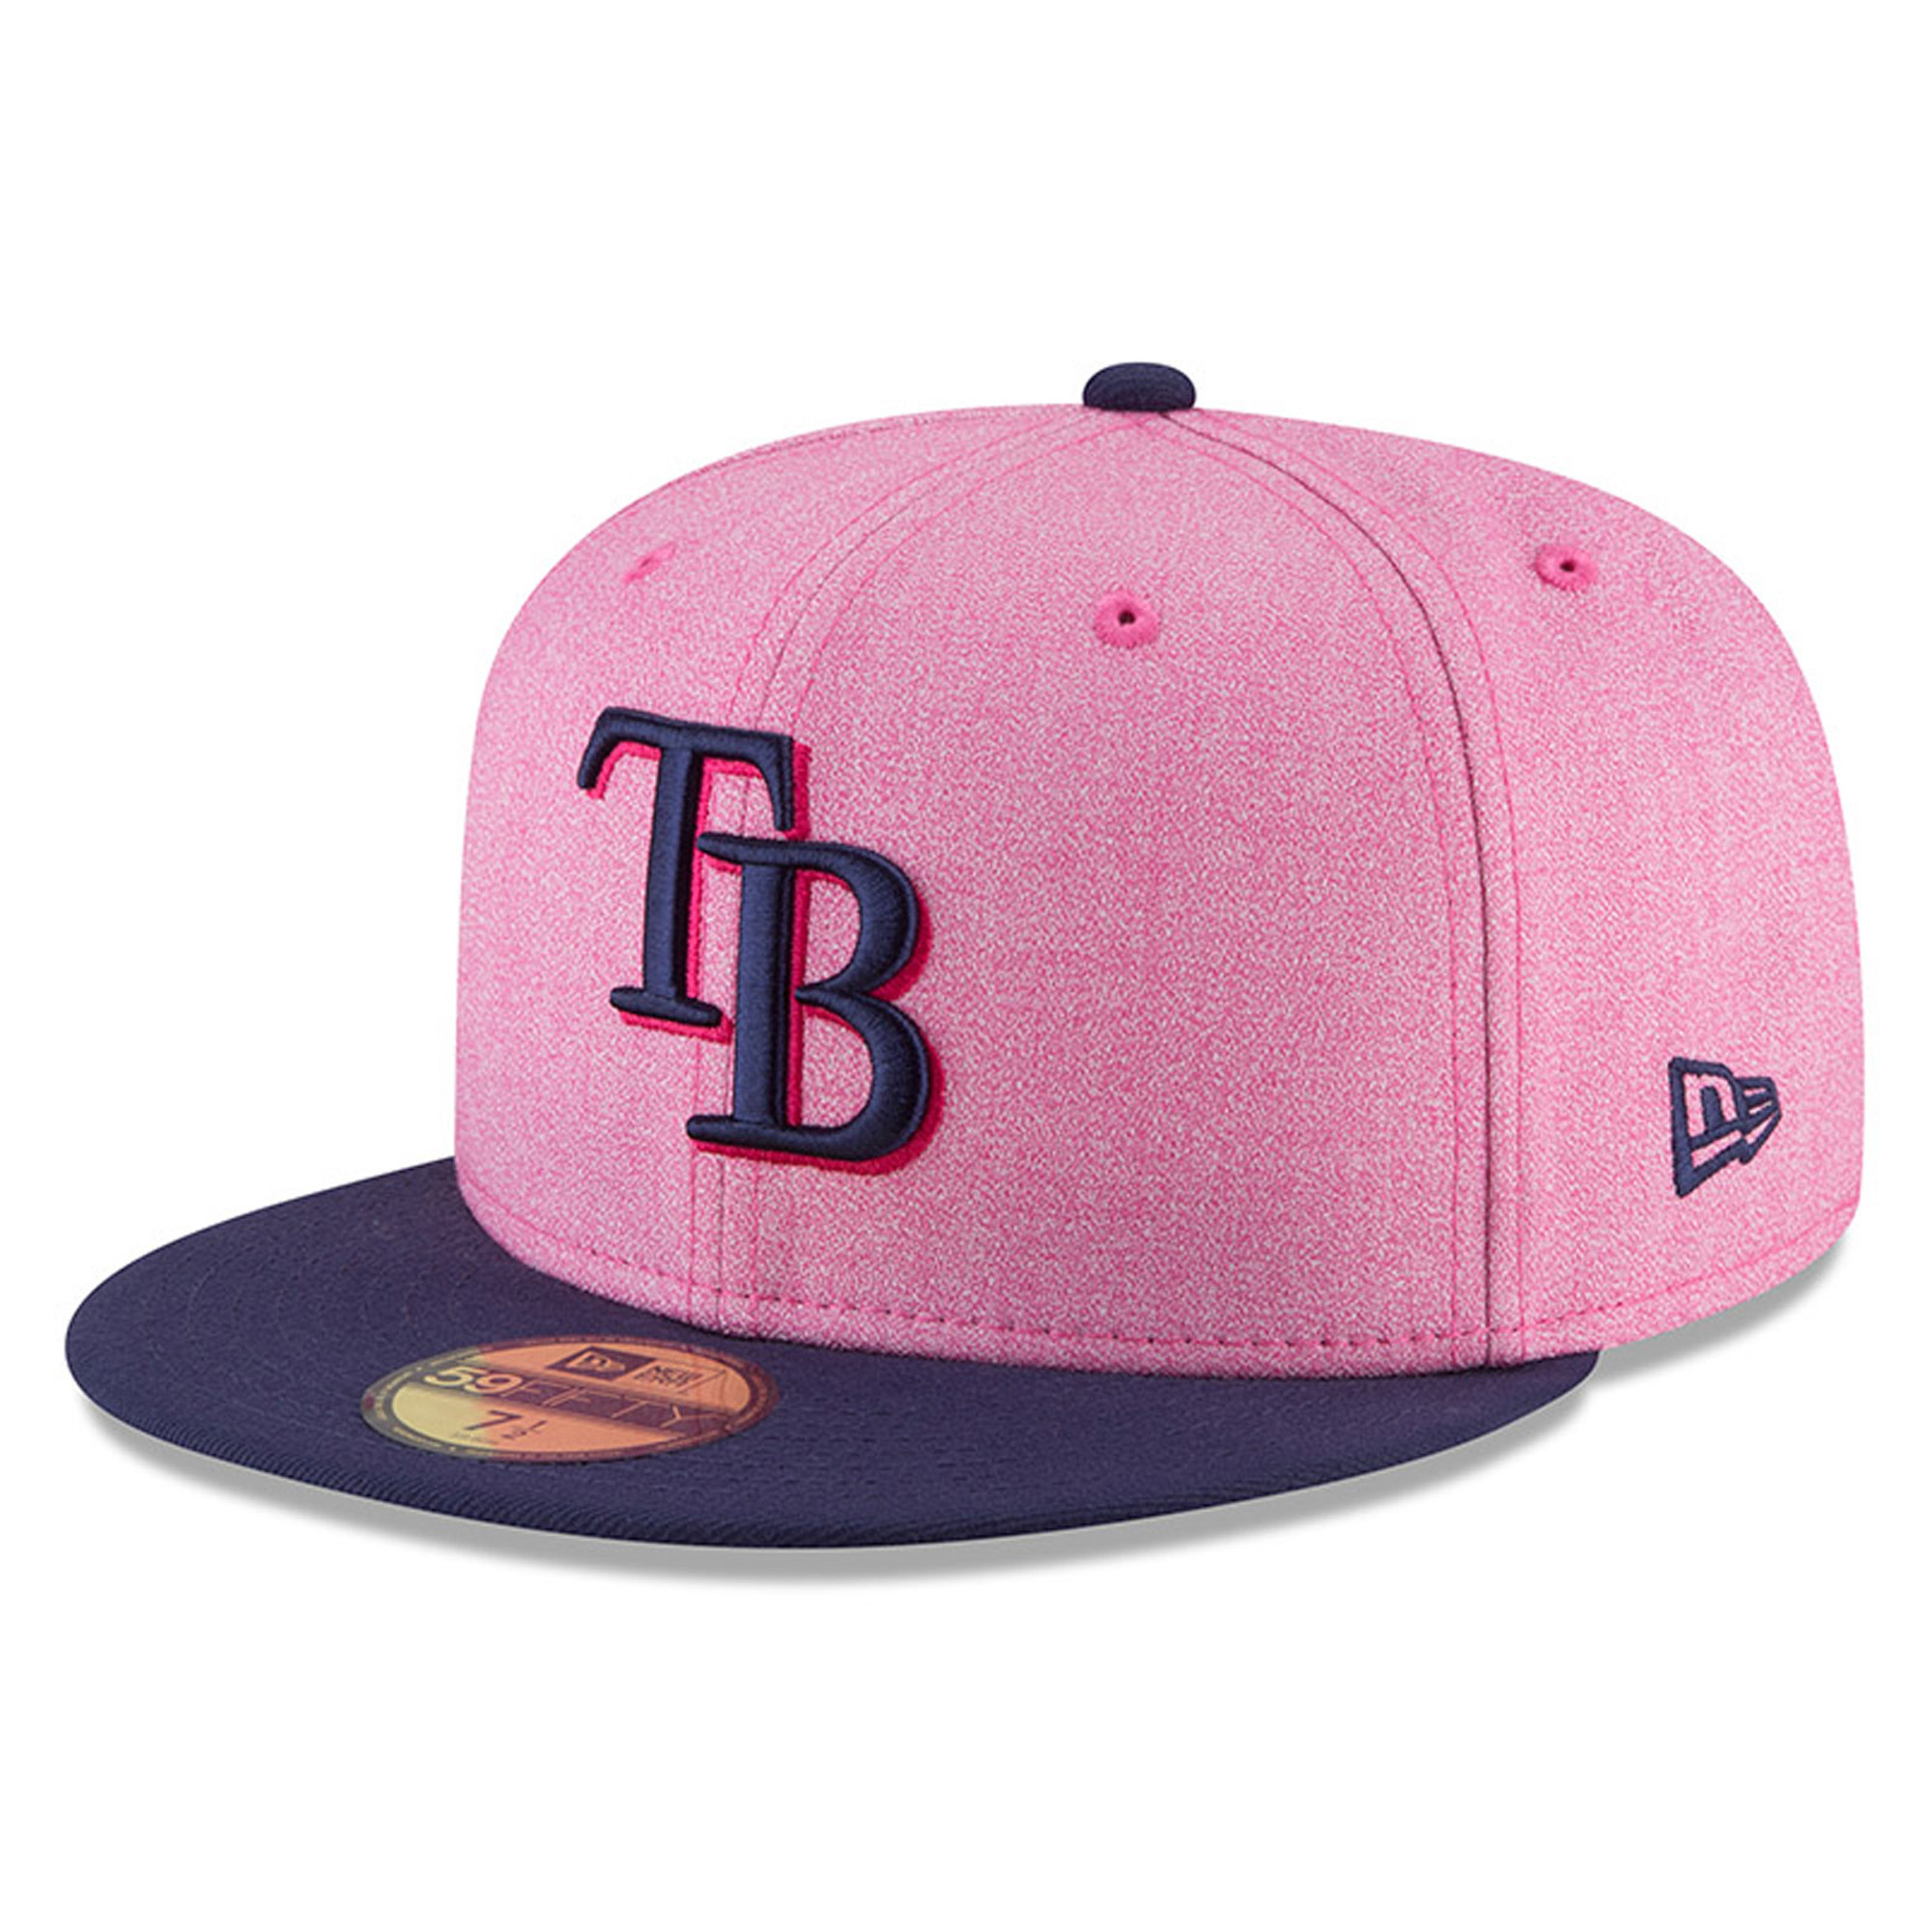 Tampa Bay Rays New Era 2018 Mother's Day On-Field 59FIFTY Fitted Hat - Pink/Blue